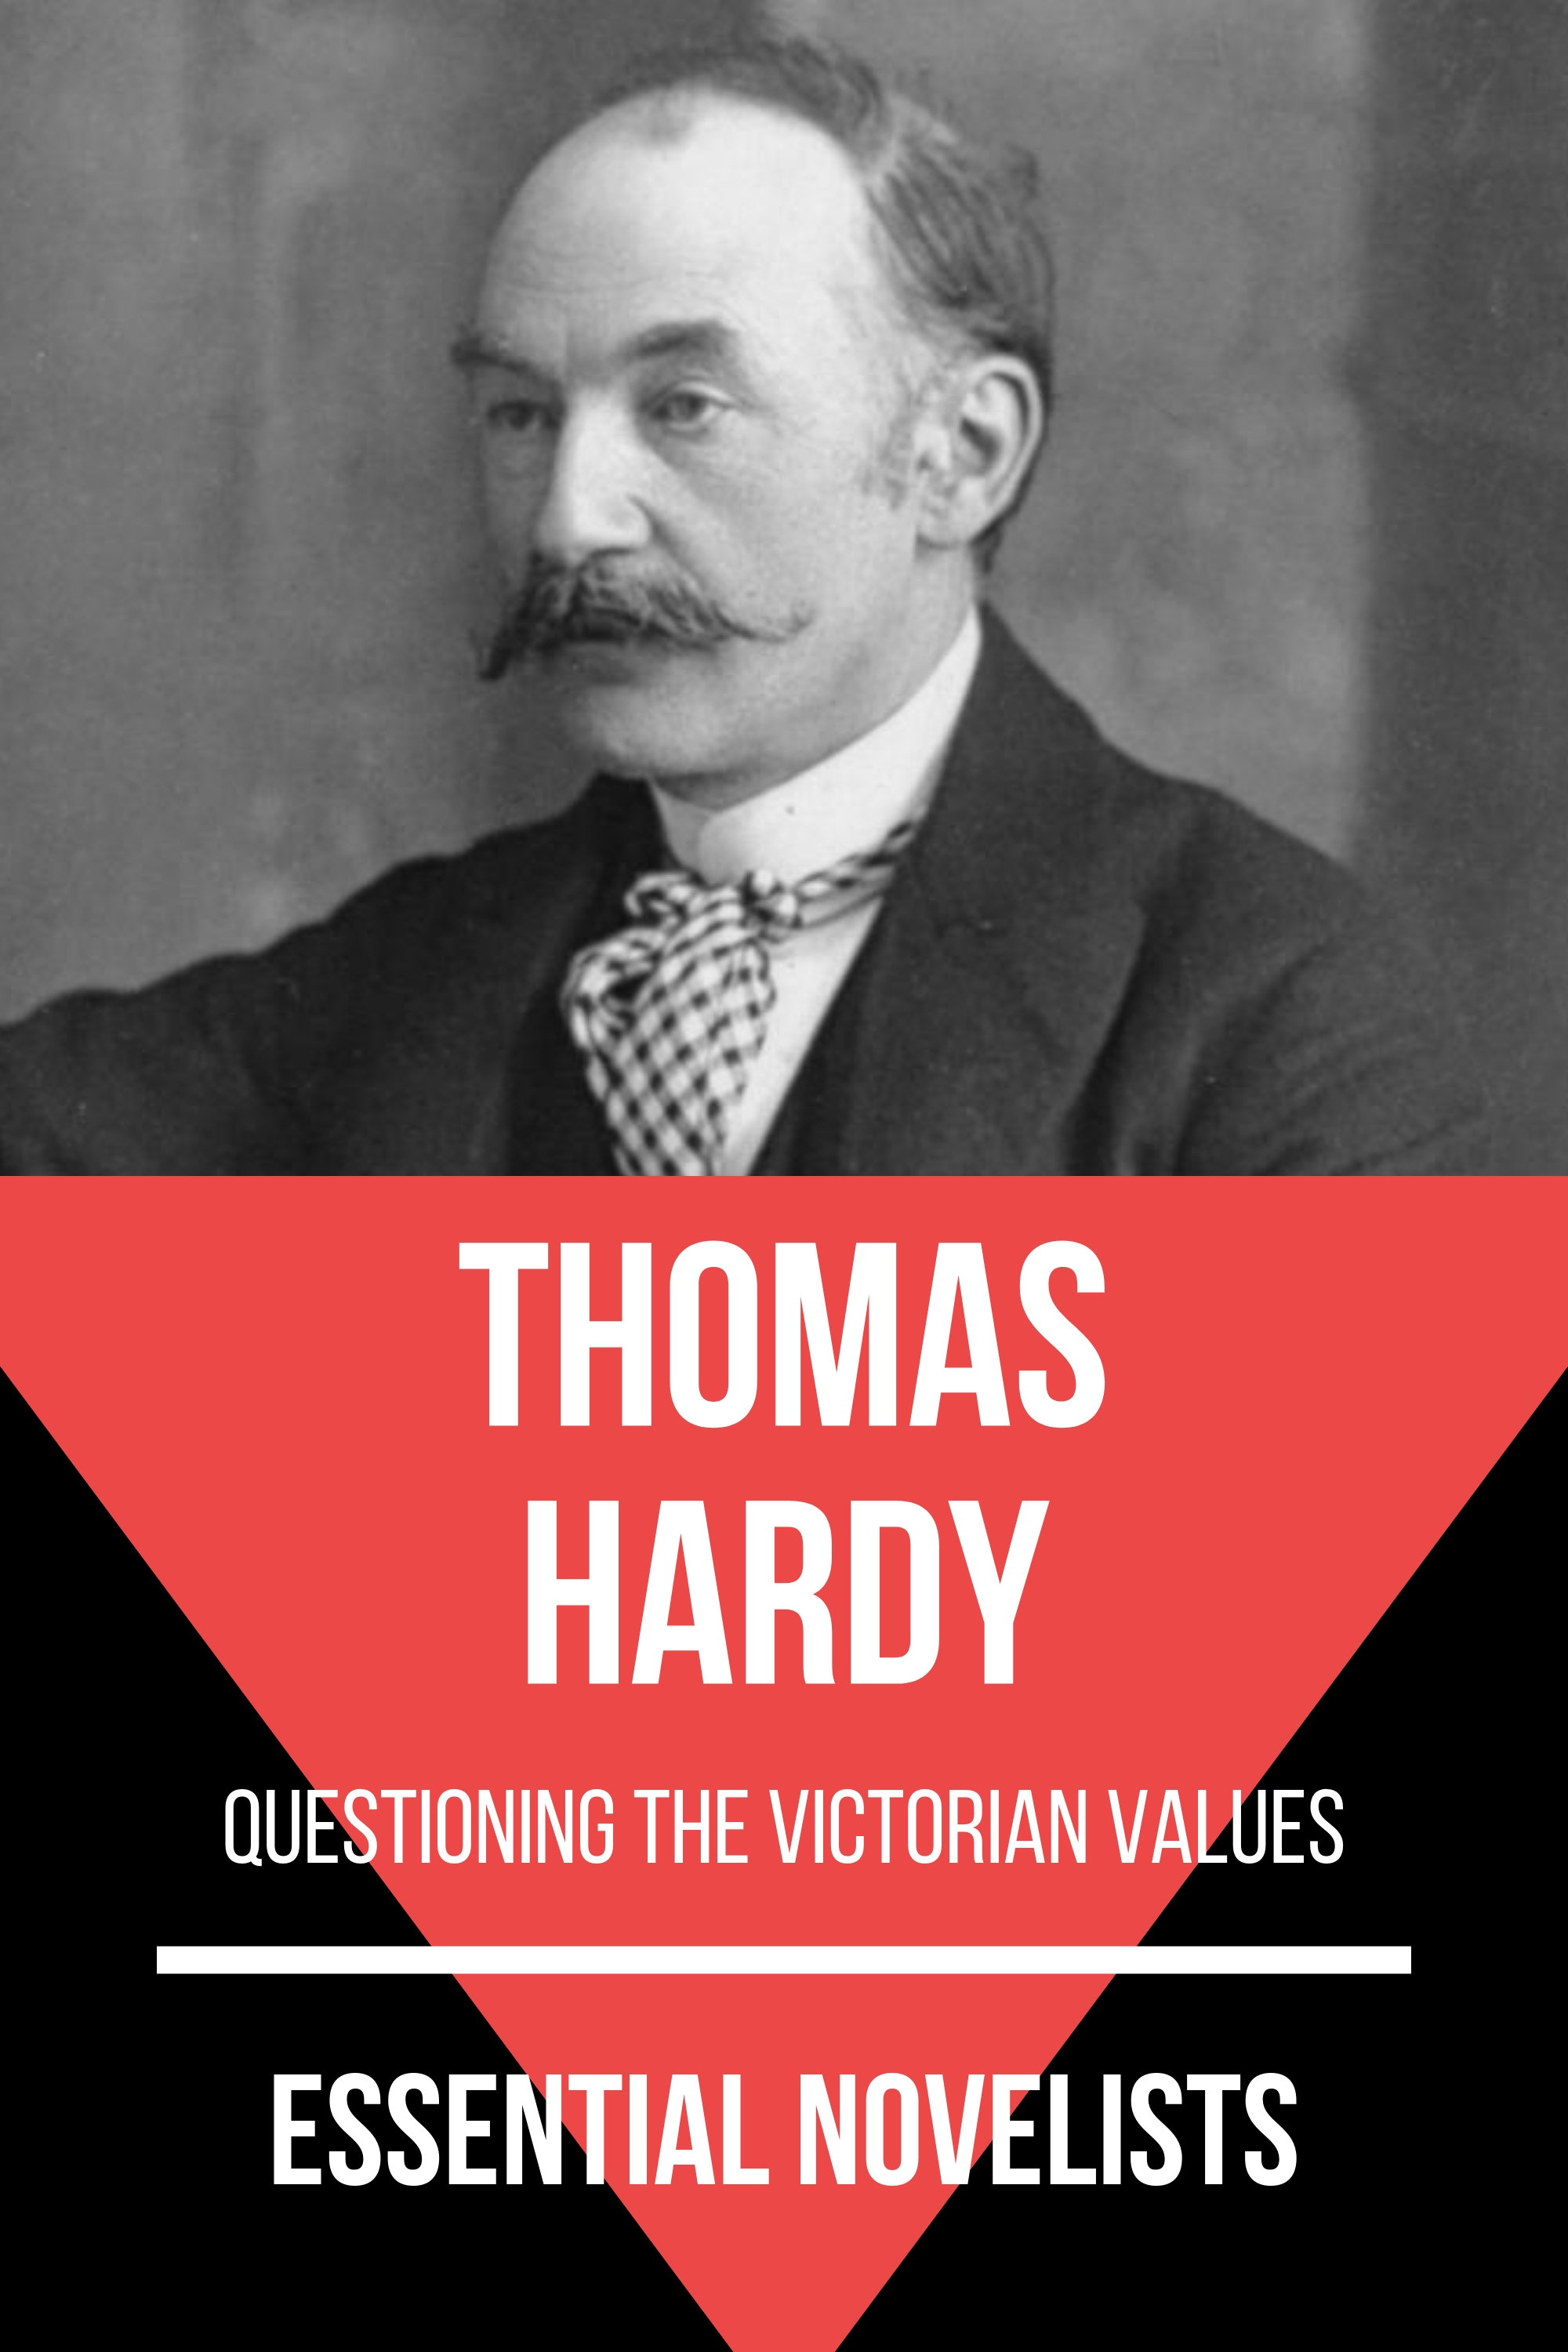 August Nemo Essential Novelists - Thomas Hardy thomas d worrall the grain trust exposed